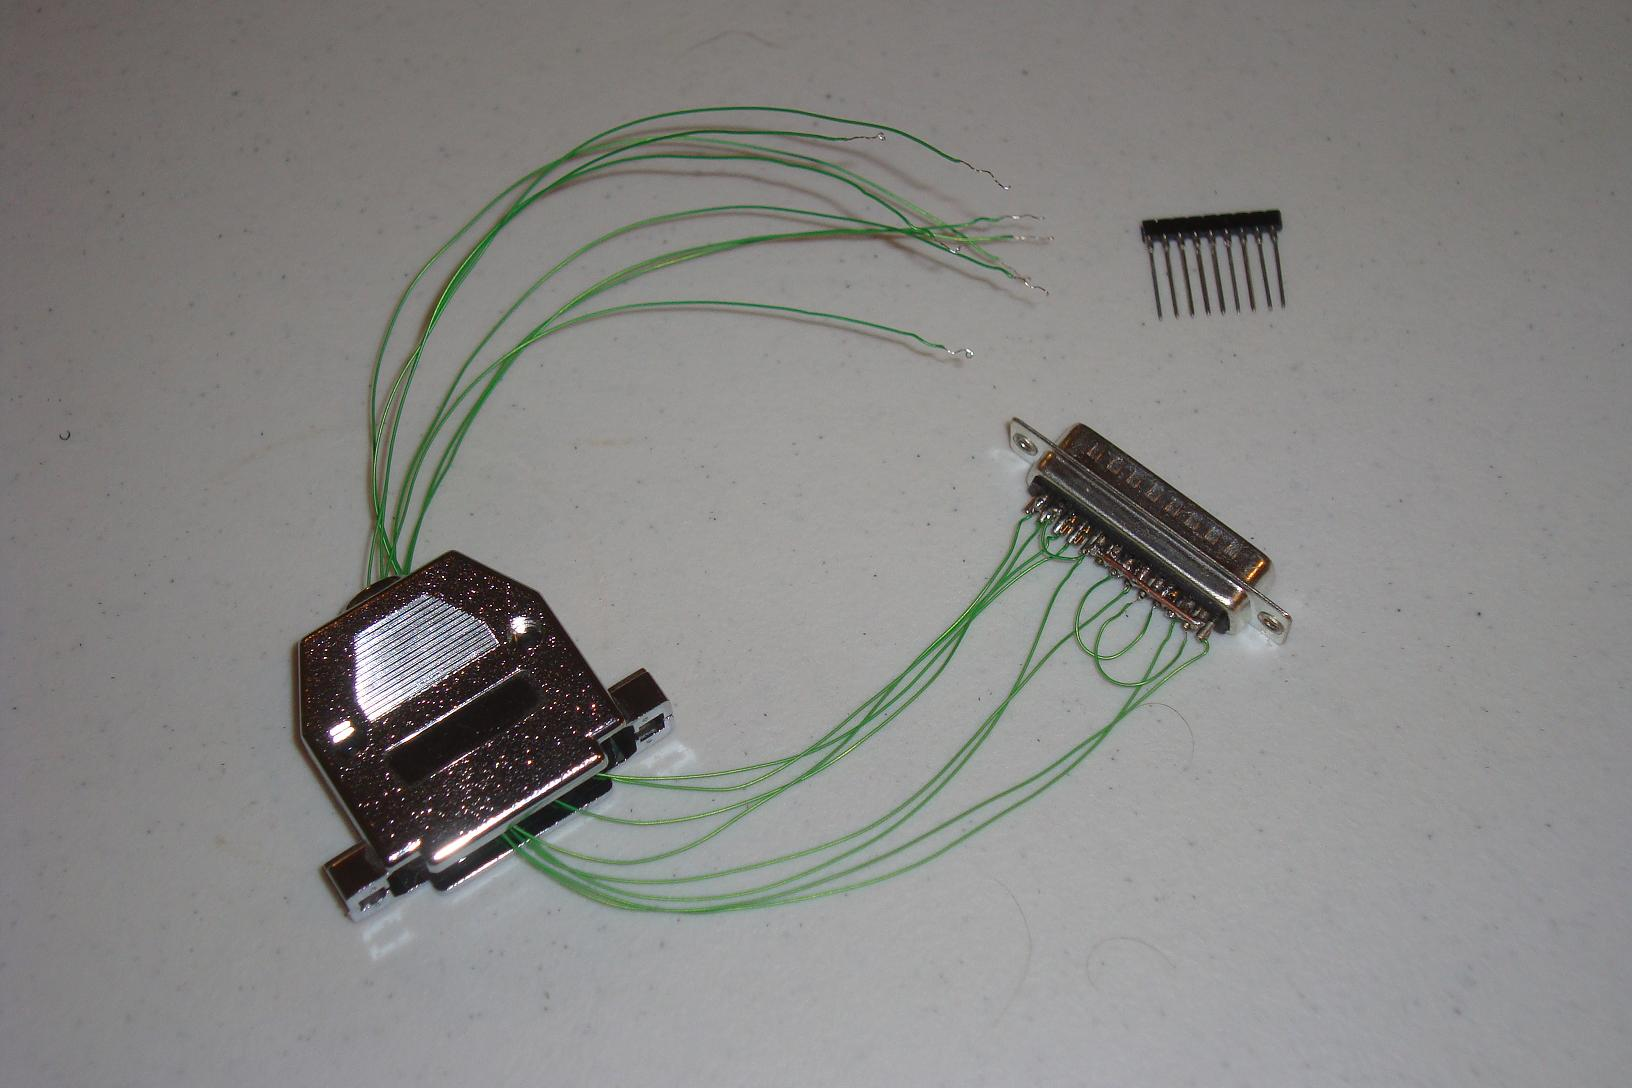 Byteblastermv Diy Programmer Hardware Connectors Pyroelectro Simple Touch Screen Interface Schematic News Below You Can See The Soldered Connections From Parallel Port Connector Ready To Be Wire Wrapped Some Sips